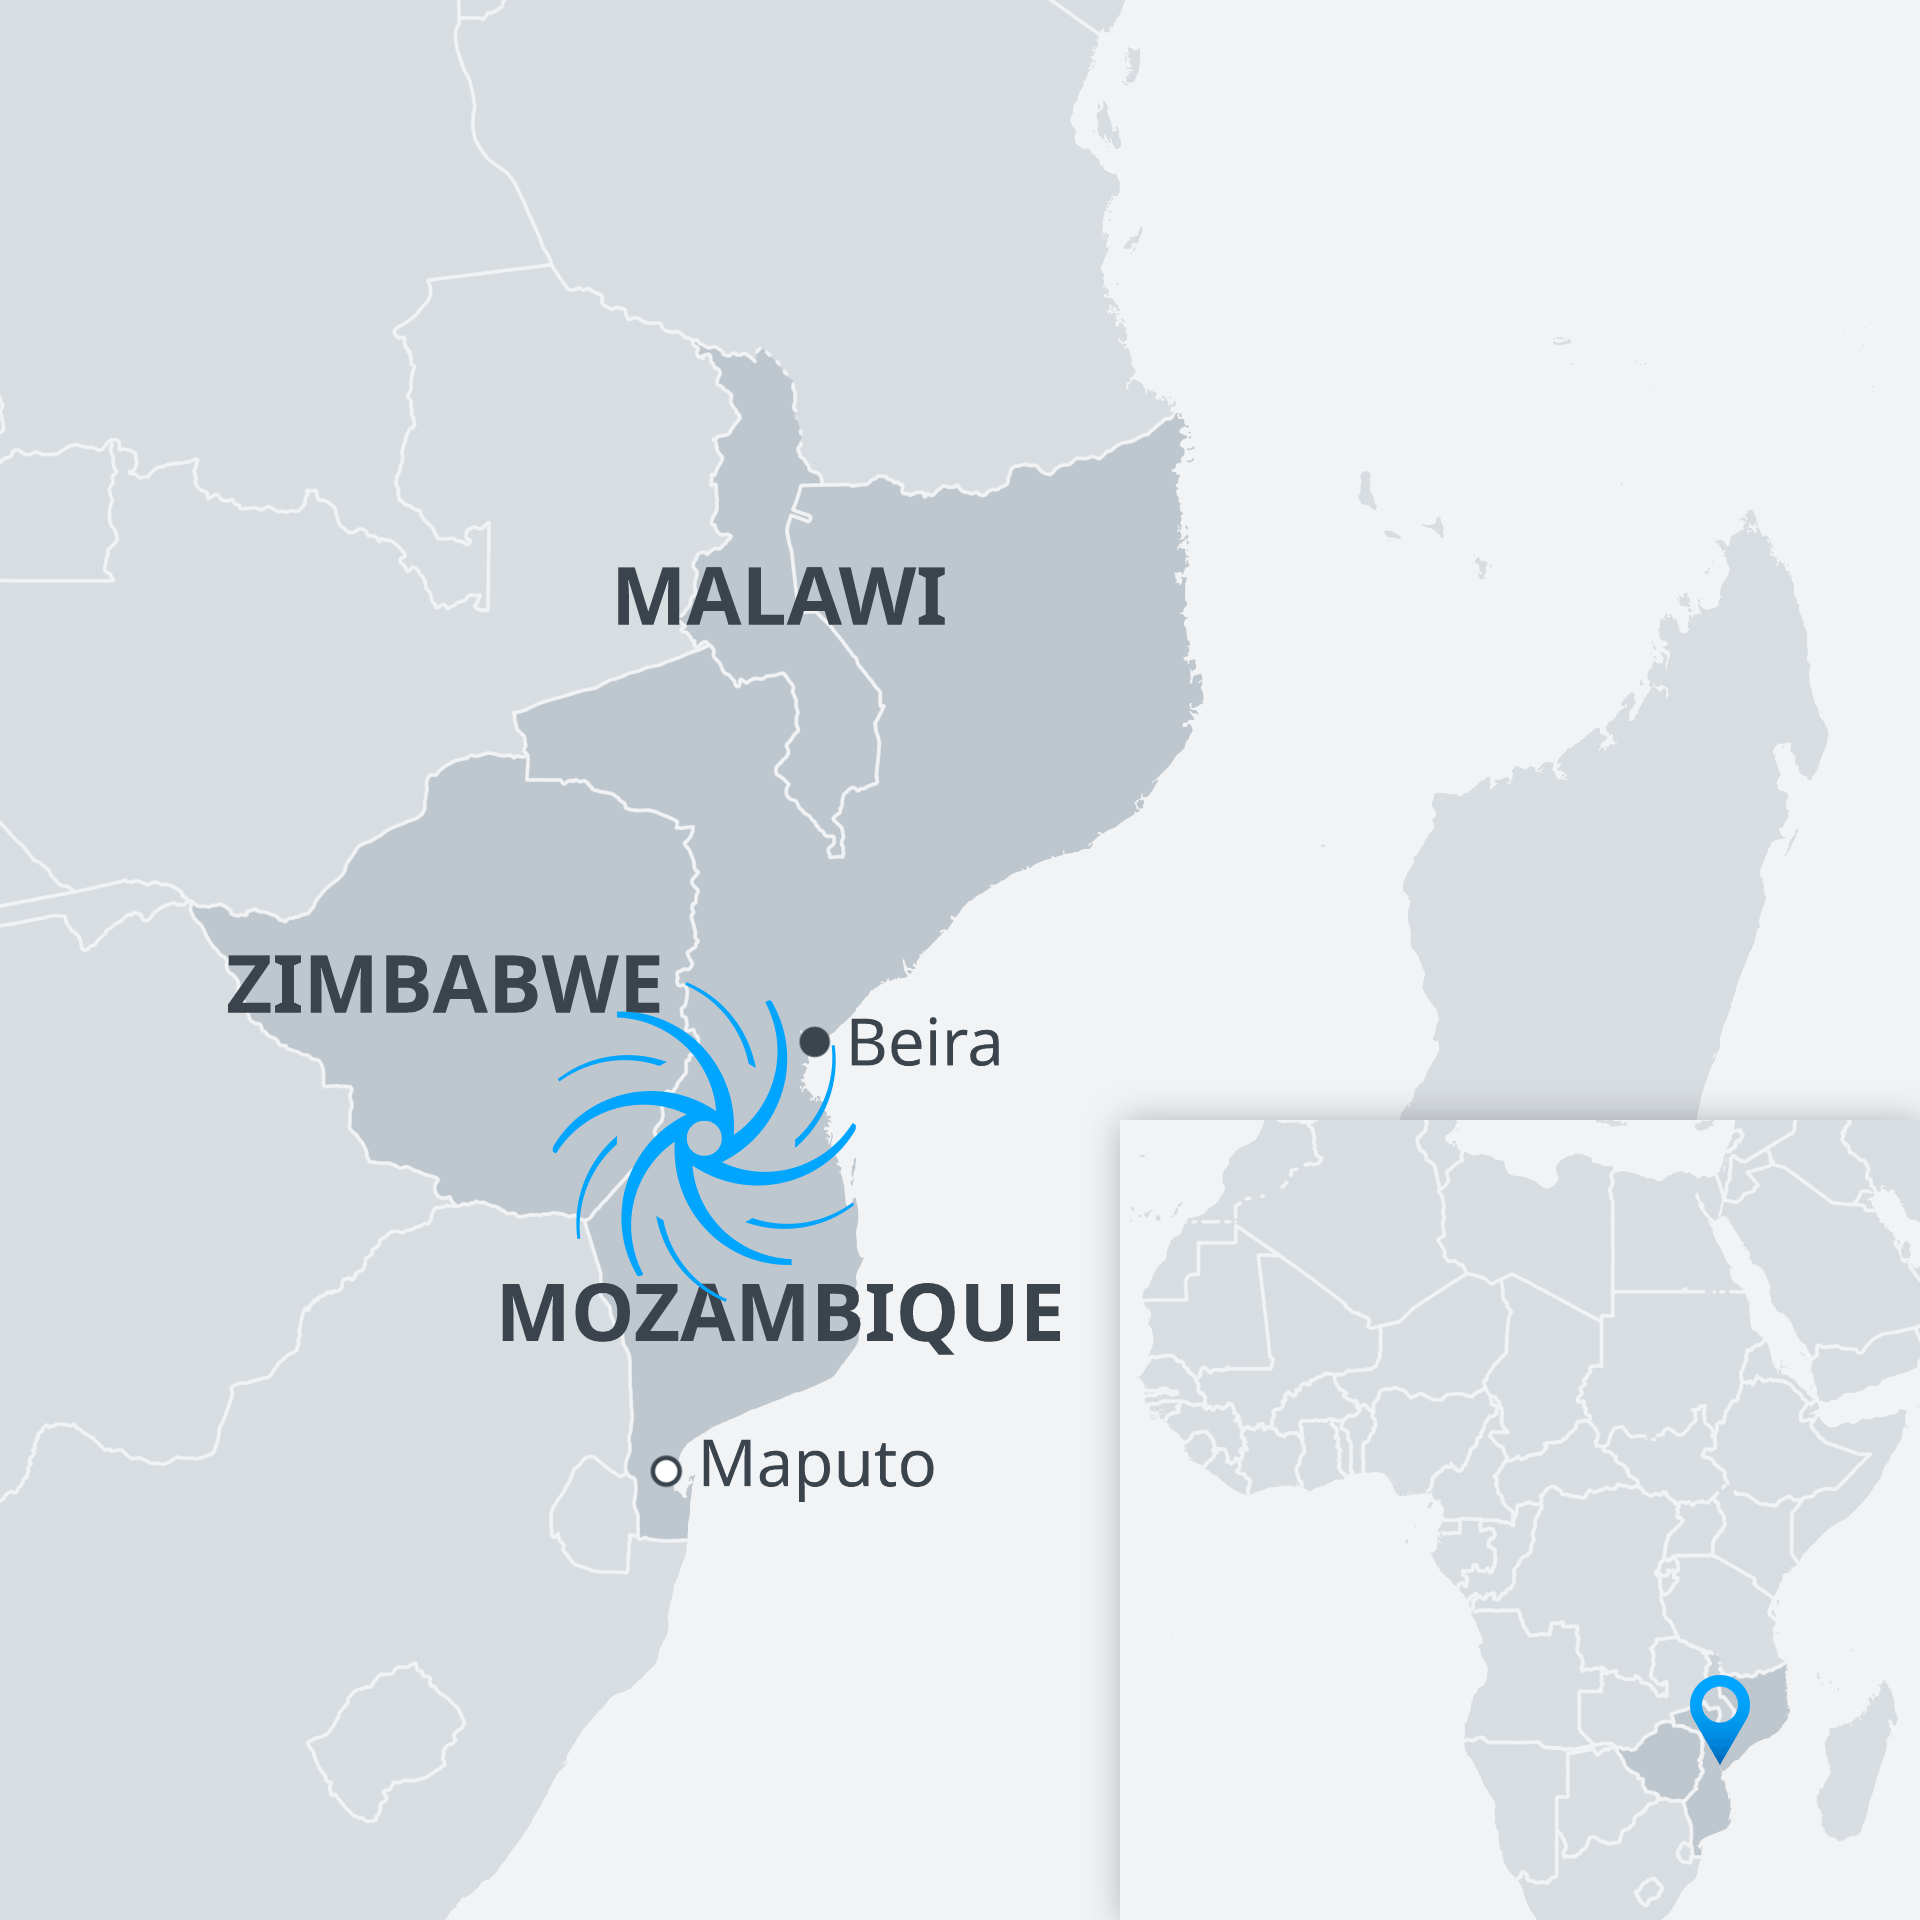 Map of Cyclone Idai's path in Mozambique